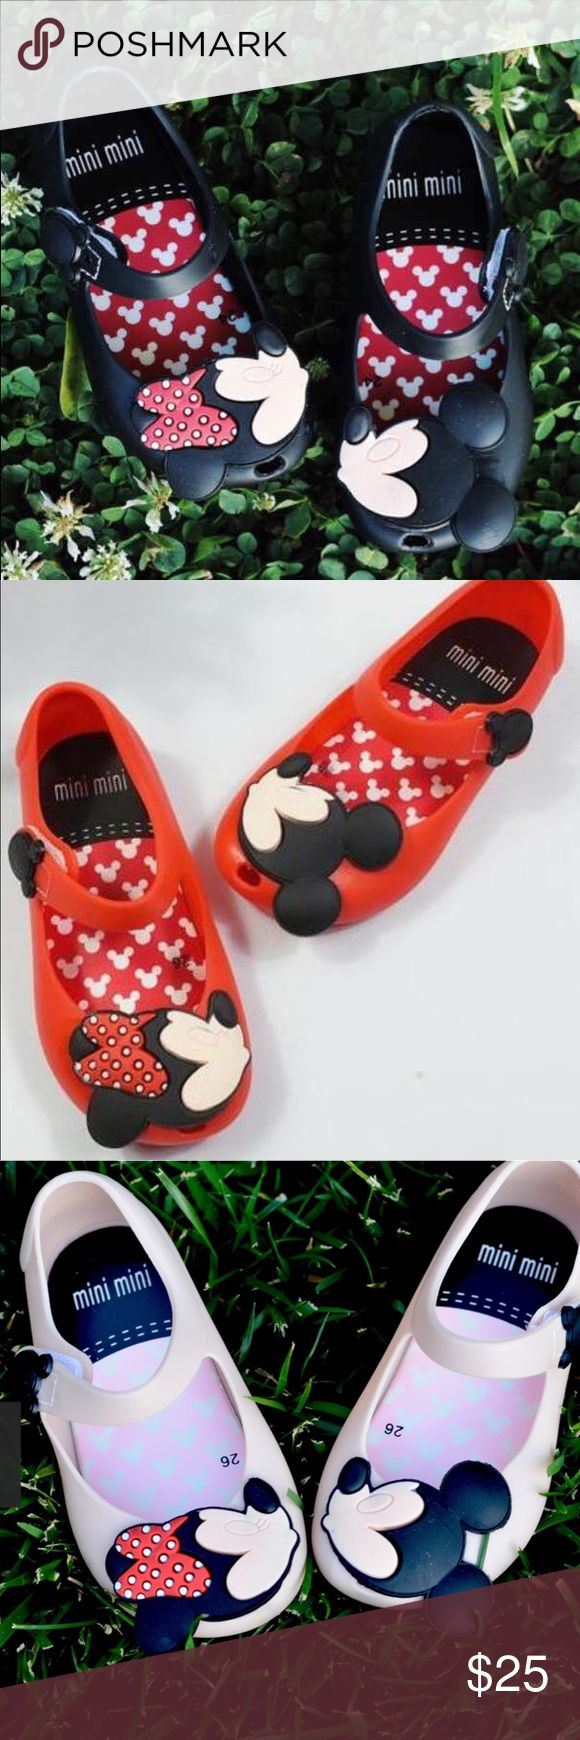 Mickey Minnie jellies Adorable ,New, no flaws ❤not mini Melissa ❤used for reference. Great quality , I've had no complaints or problems  with these shoes . All threee colors available Mini Melissa Shoes Sandals & Flip Flops